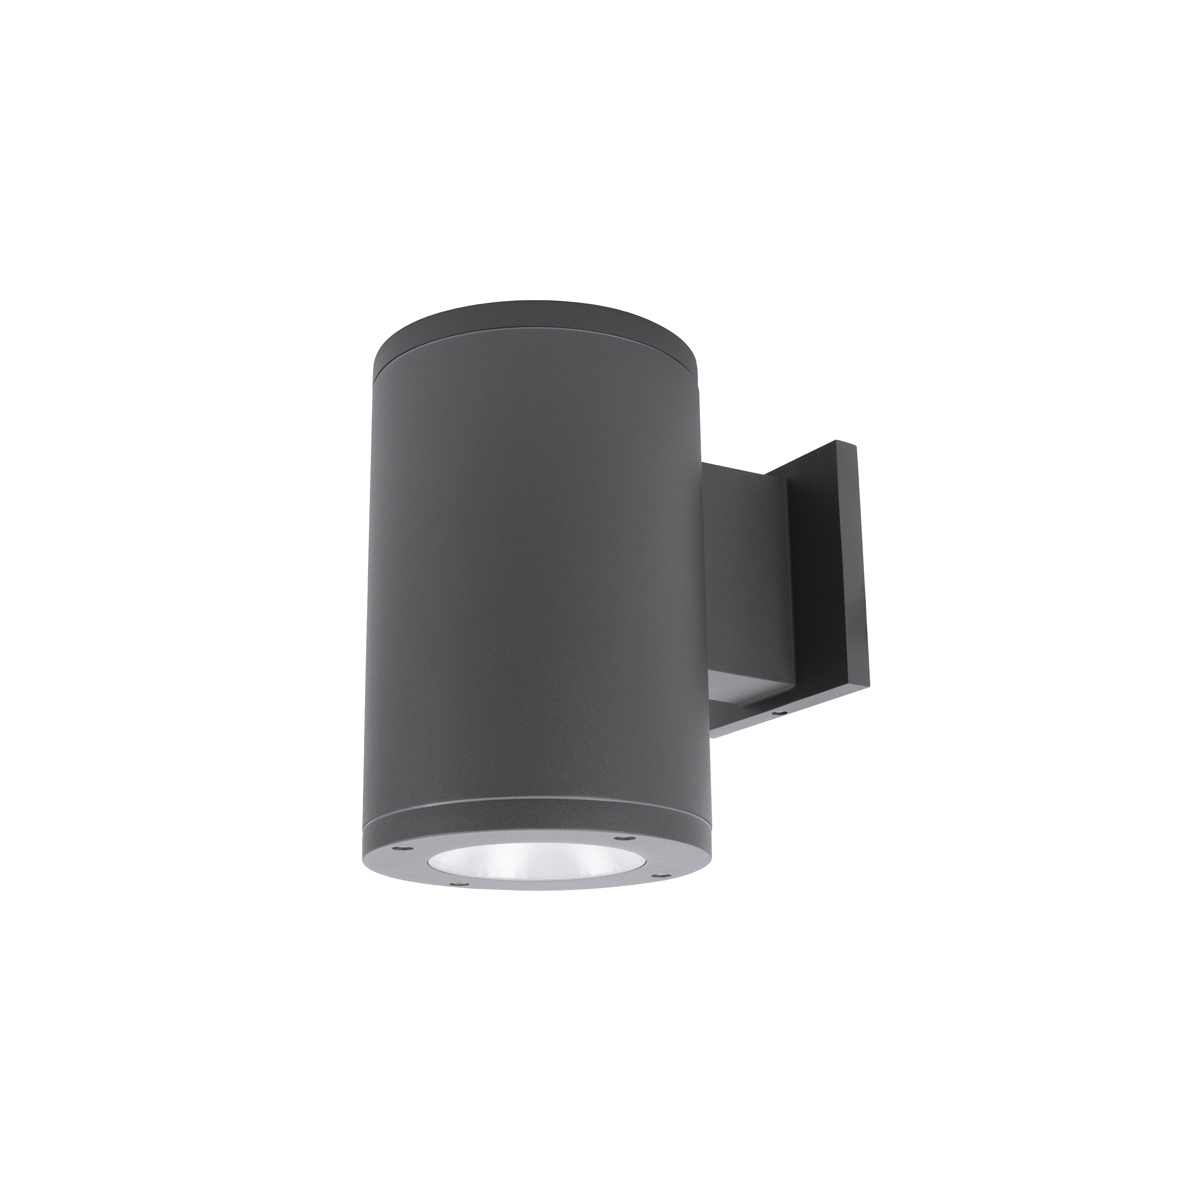 Away from Wall 3500K WAC Lighting DS-WS05-F35A-BK 5-Inch Single Side Tube Arch Wall Mount